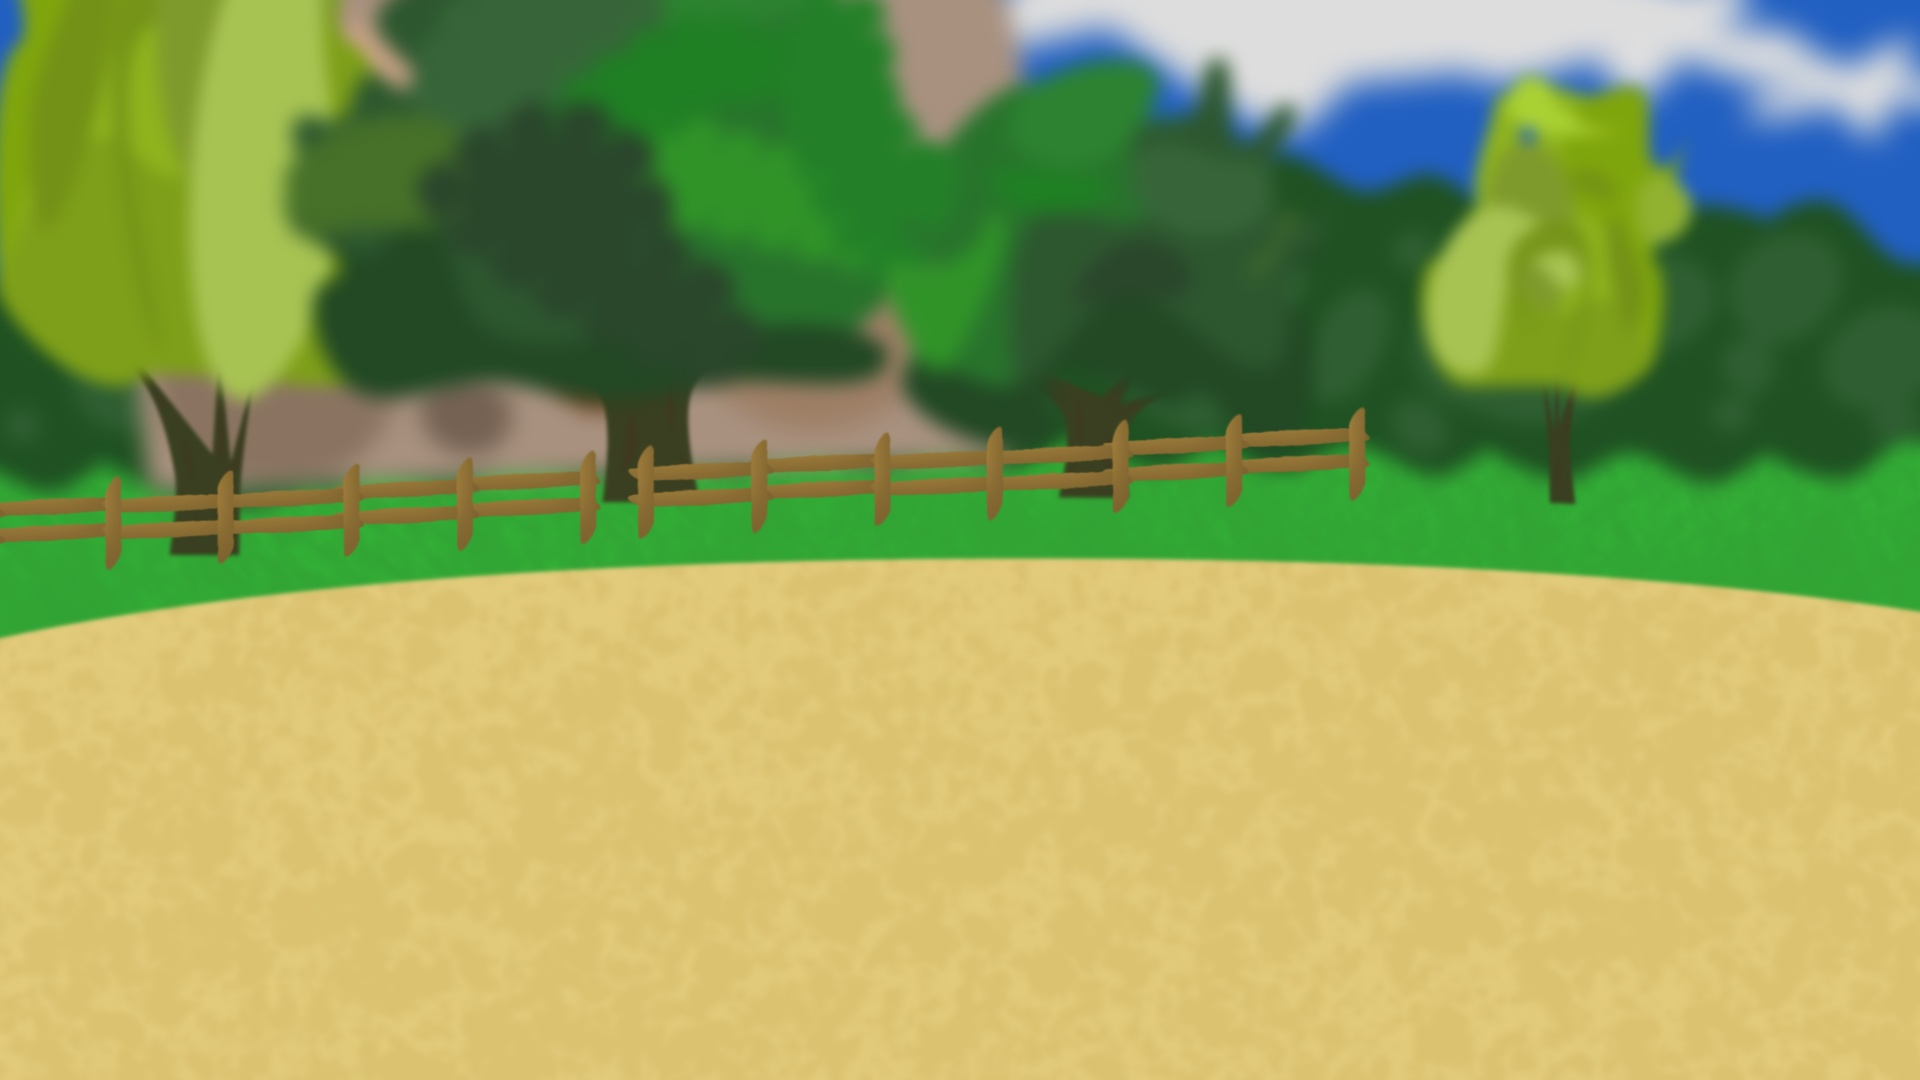 5621545_150563125241_Blurrybackgroundtest.jpg